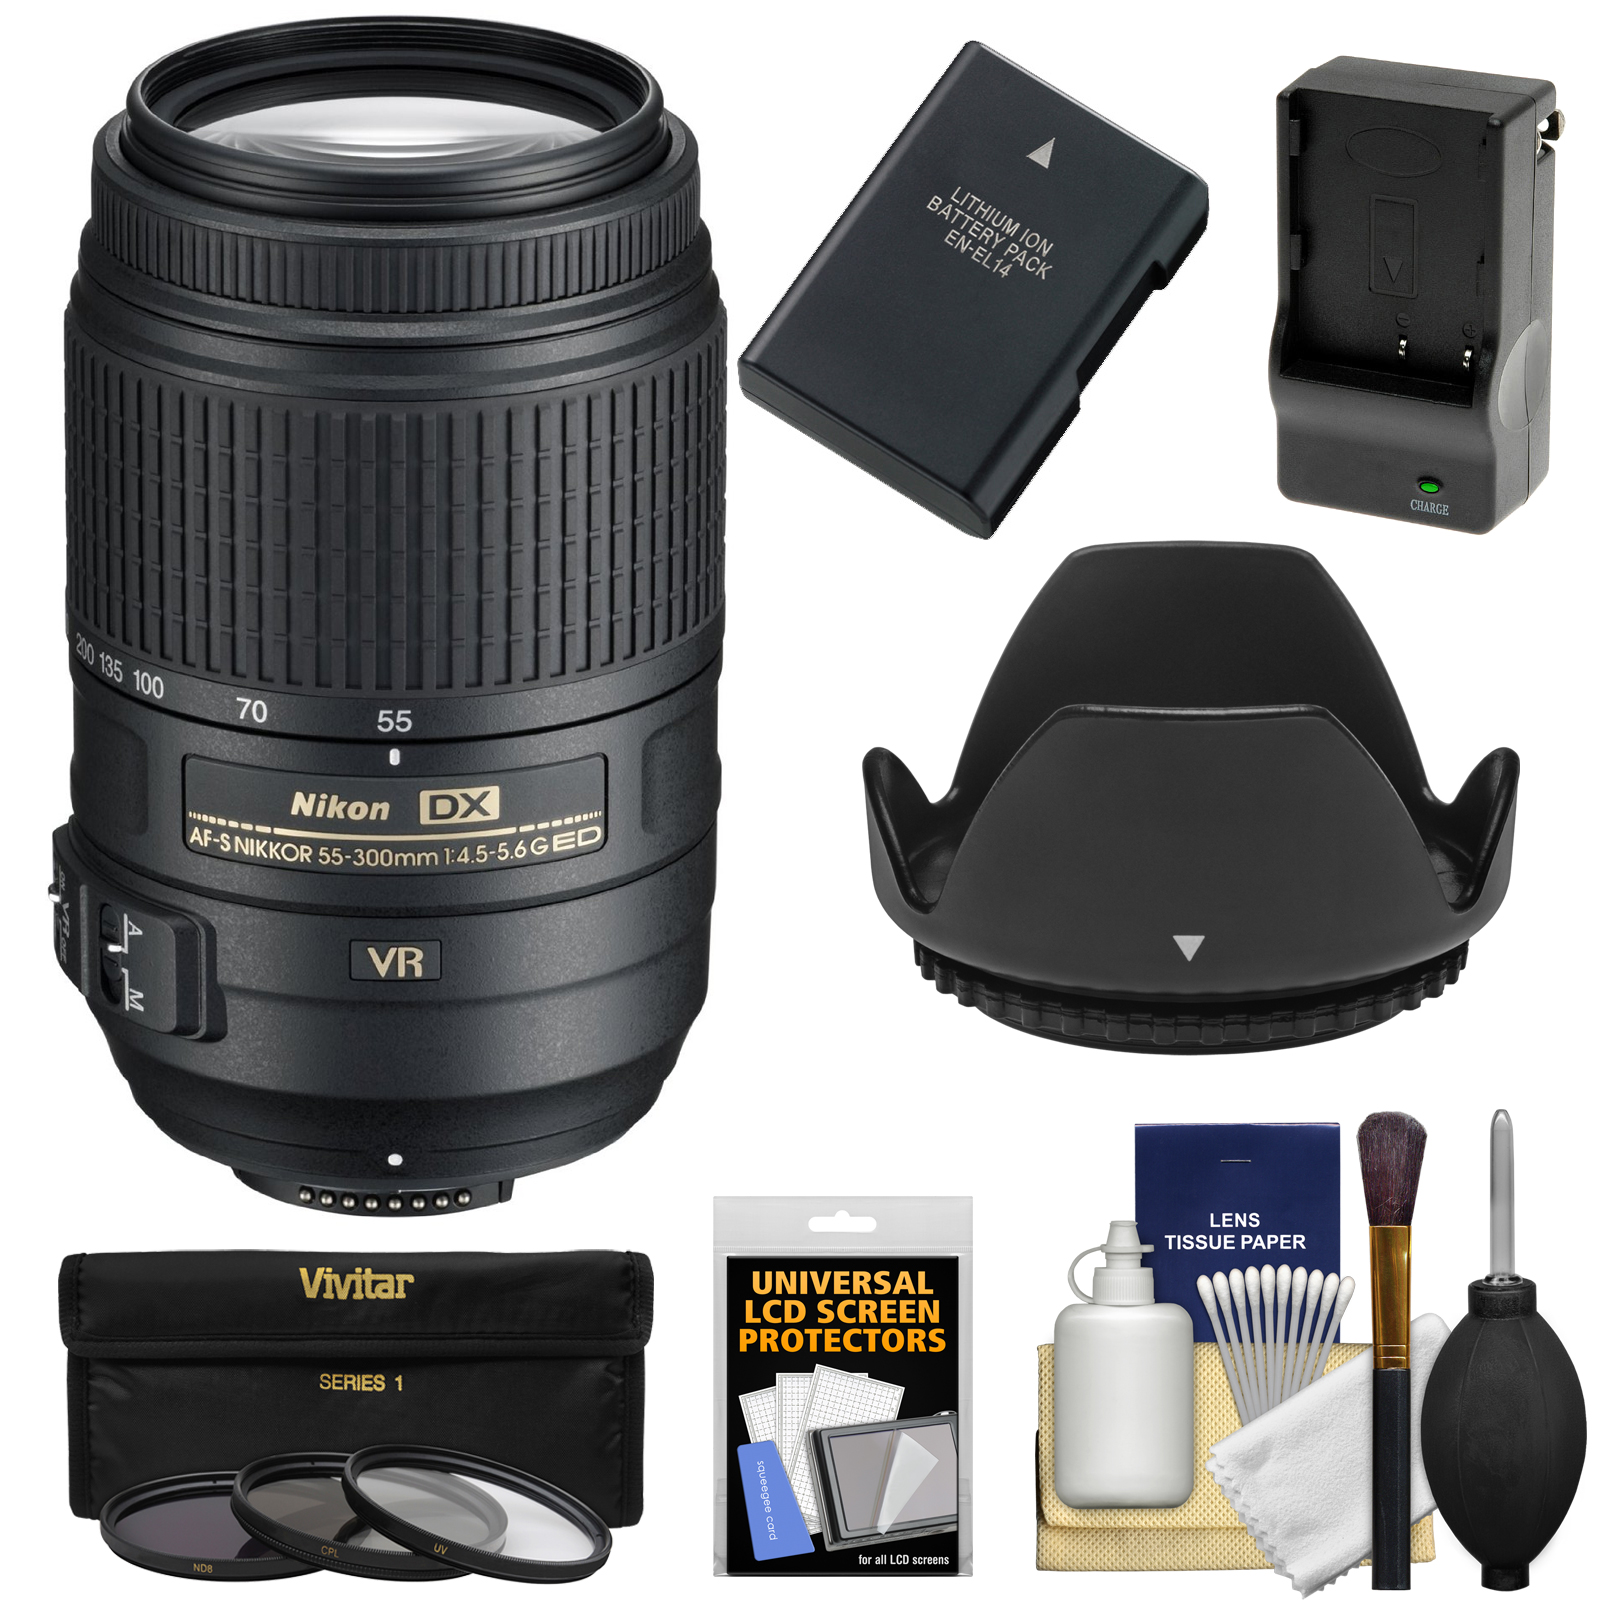 Nikon 55-300mm f/4.5-5.6G VR DX AF-S ED Zoom-Nikkor Lens with EN-EL14 Battery/Charger + 3 Filters + Hood + Kit for D3200, D3300, D5300, D5500 Cameras